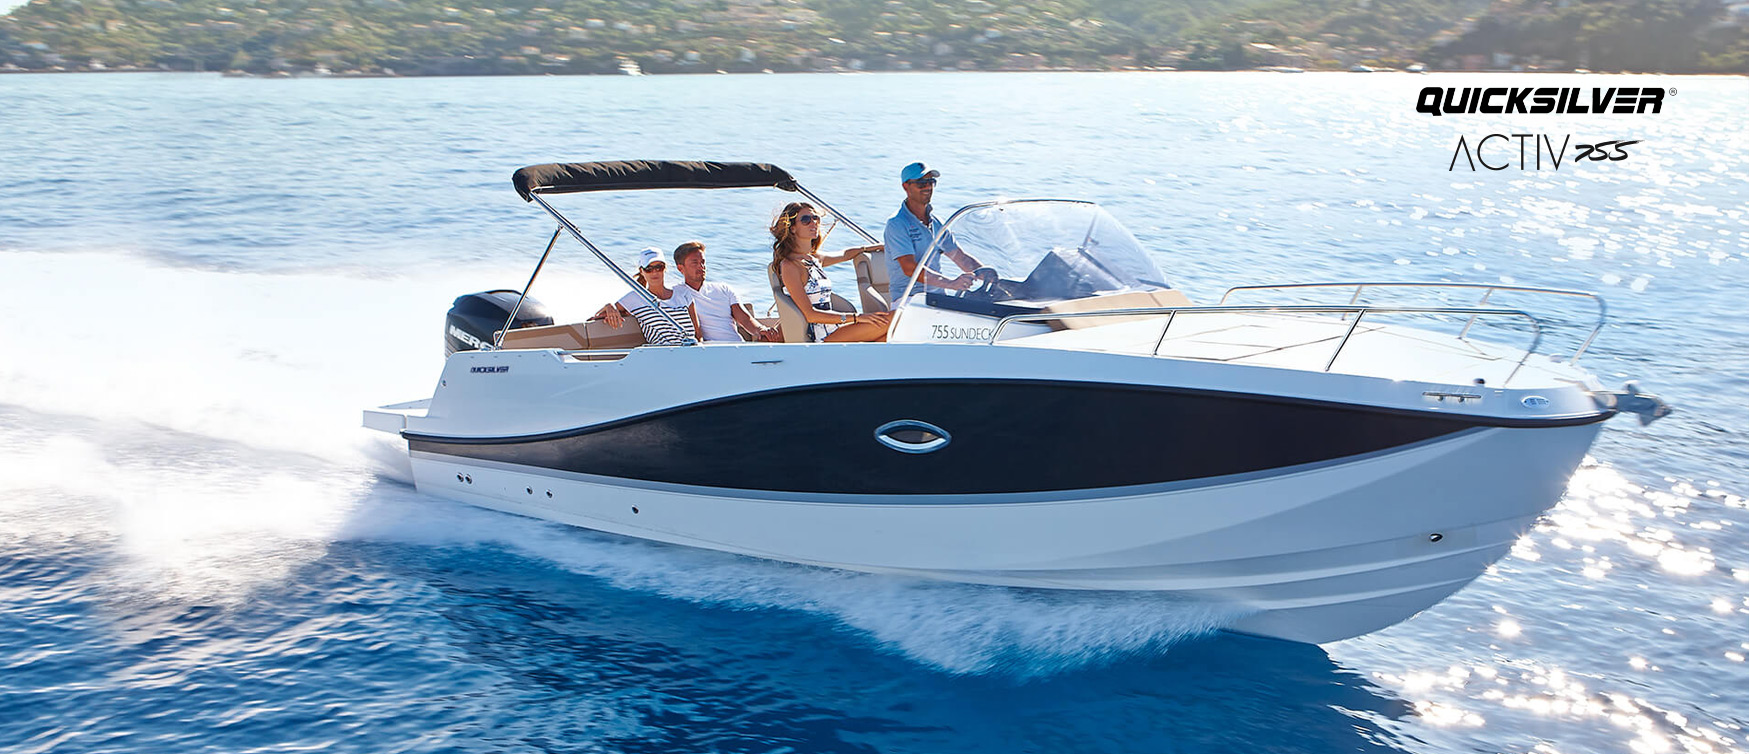 New Quicksilver Activ 755 Sundeck